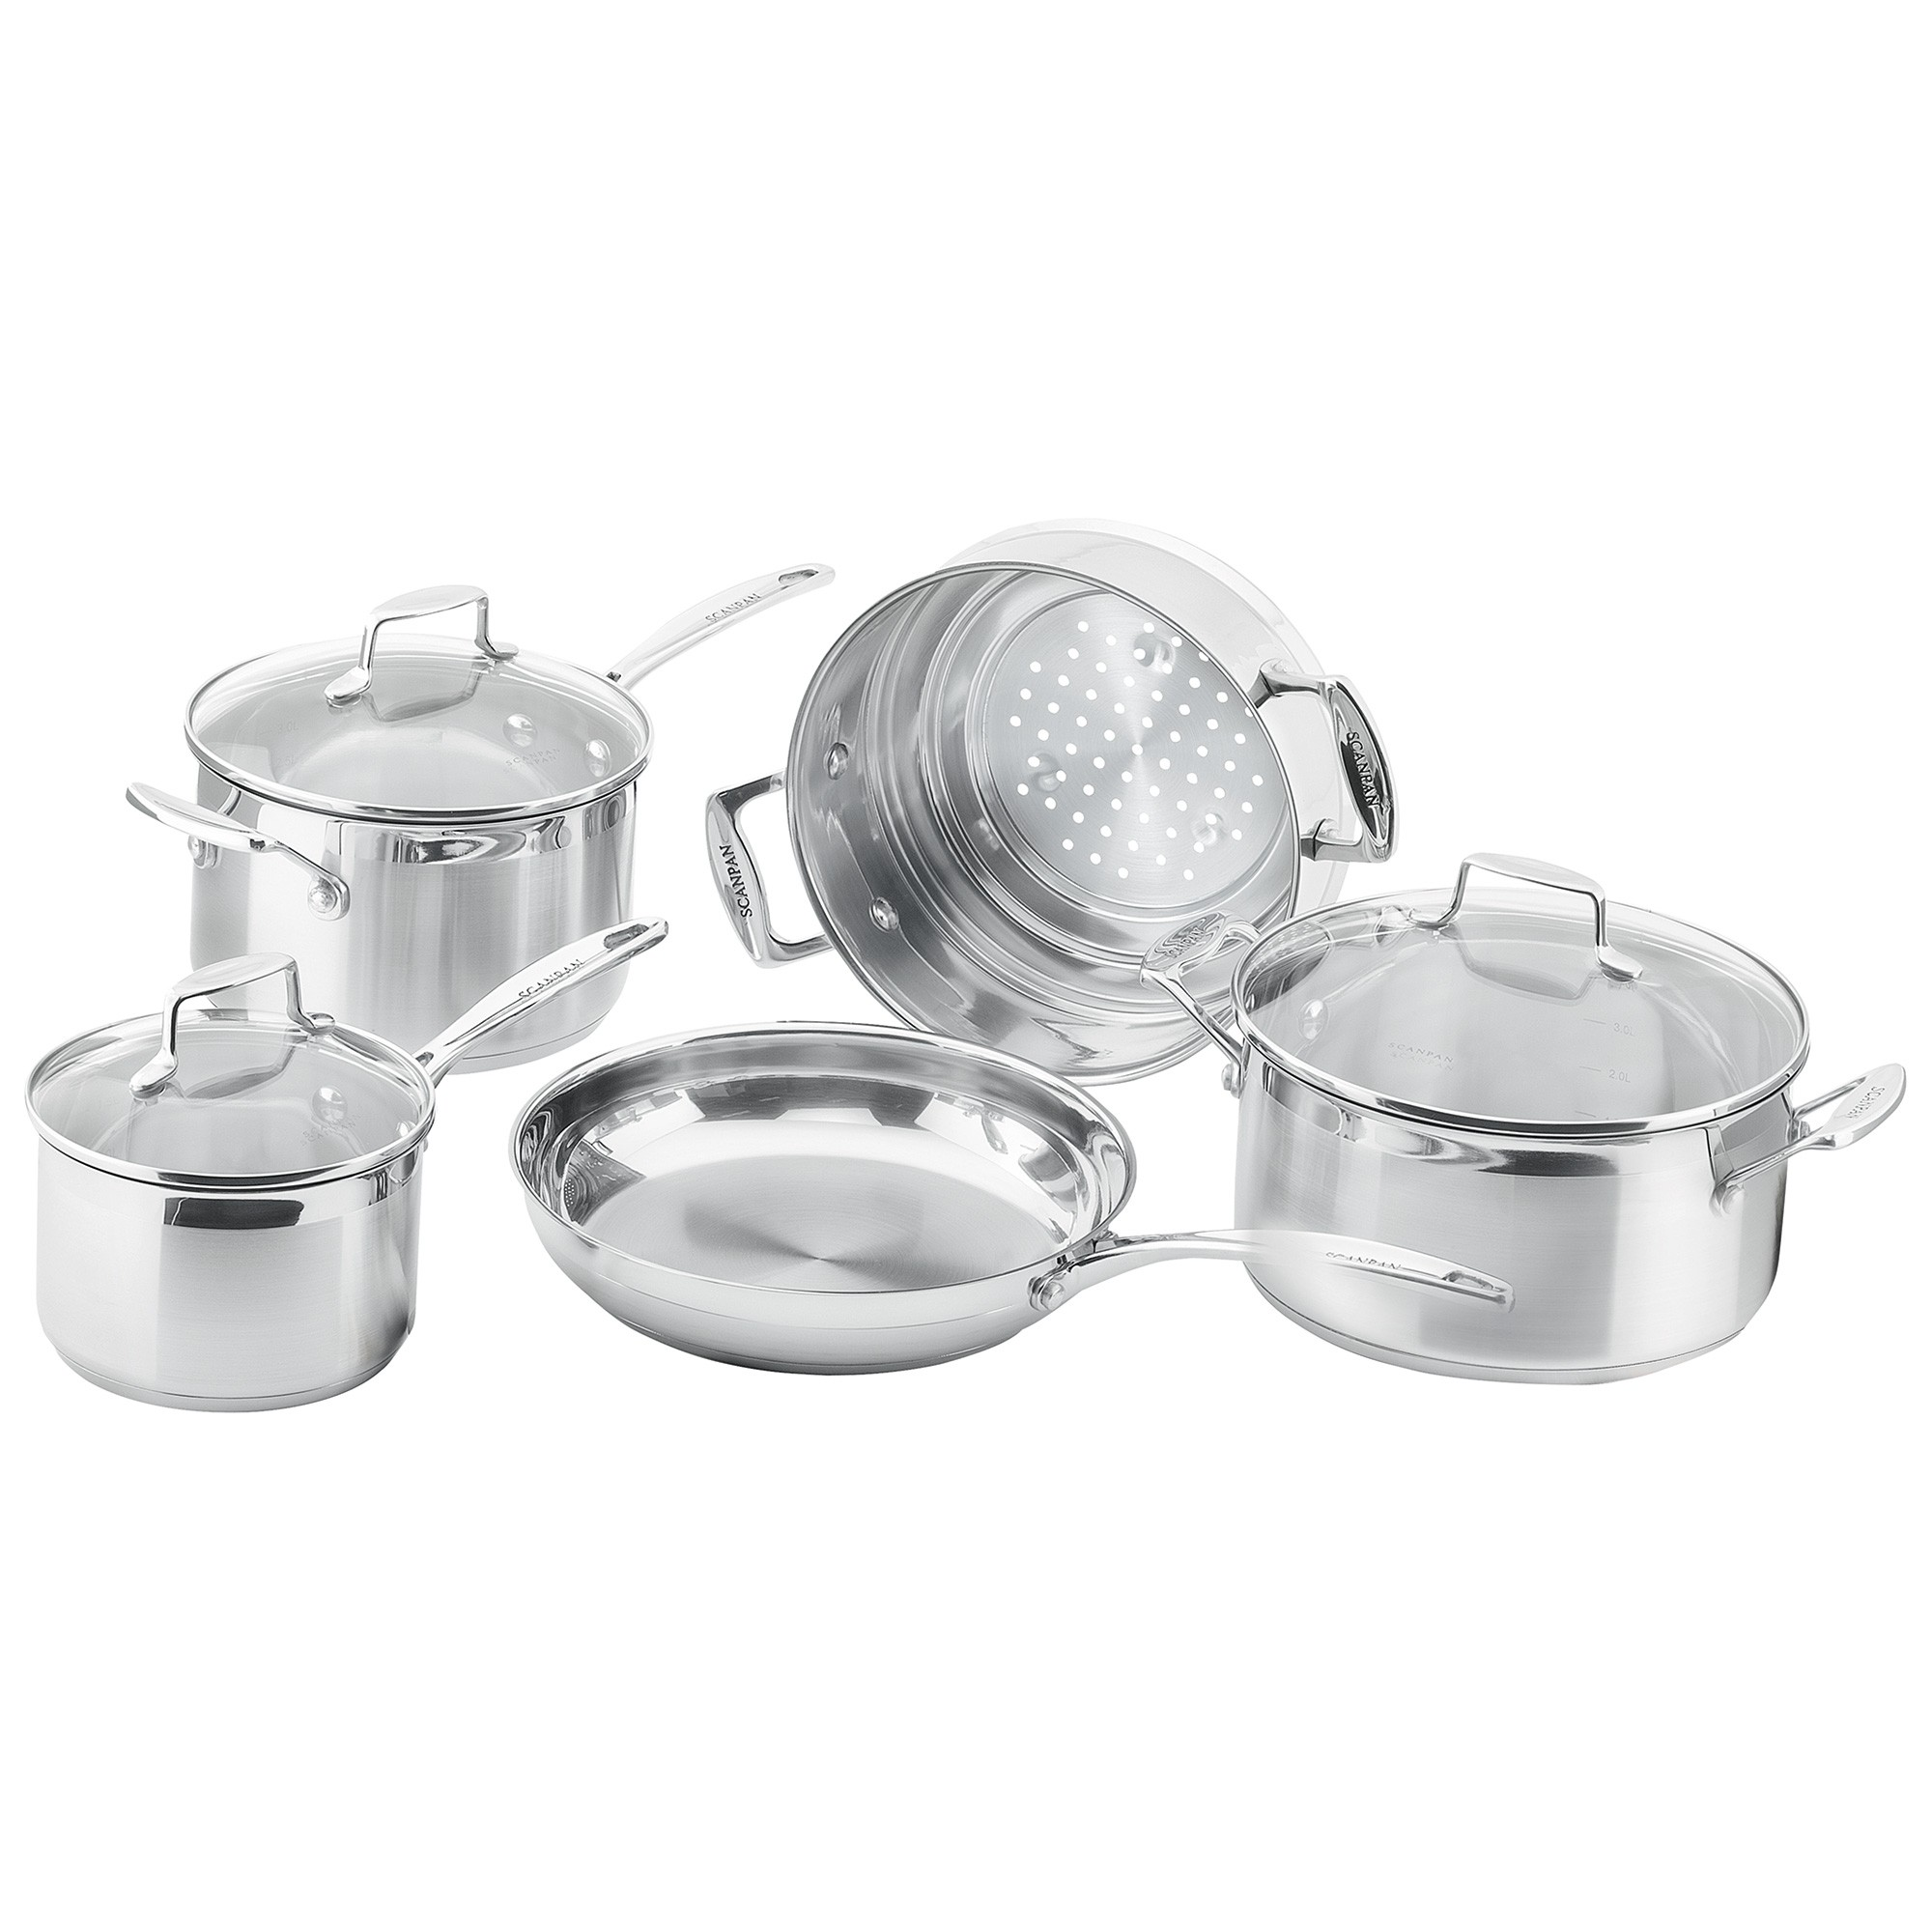 Scanpan Impact 5 Piece Cookware Set